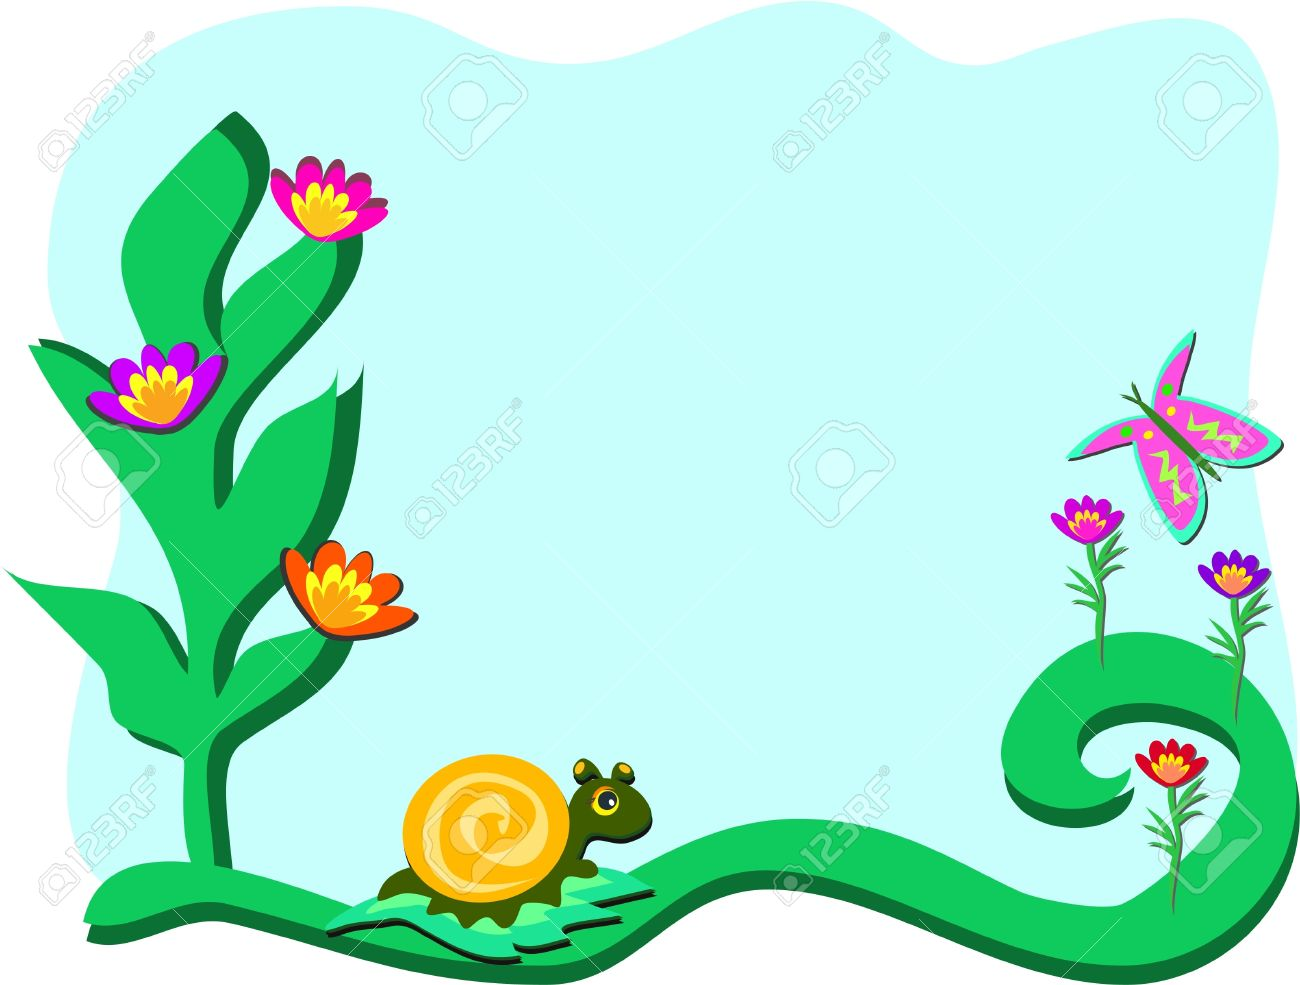 Frame with Garden with Snail and Butterfly Stock Vector - 11377380